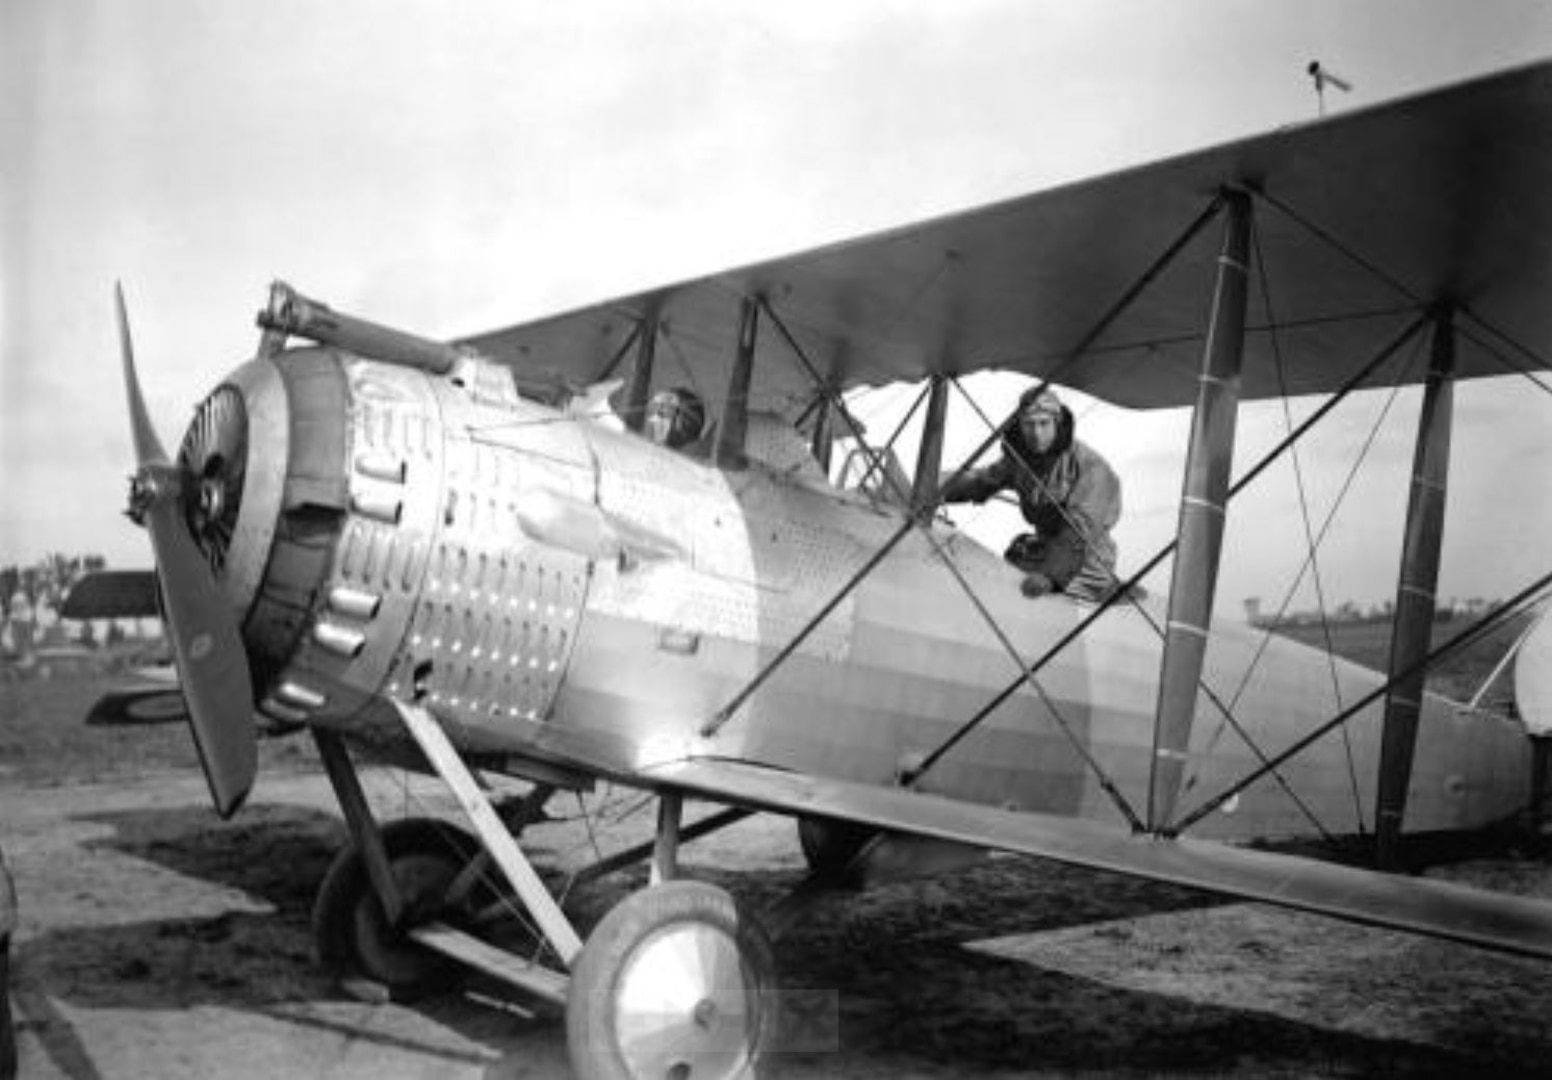 U.S. Army 2nd Lt. Francis B. Lowry, back seat, of Denver, Colorado, is seen in a French-built Salmson 2.A2 reconnaissance aircraft in 1918. Lowry served with the 91st Aero Squadron, and was killed when his aircraft was shot down Sept. 26, 1918. (U.S. Army photograph)